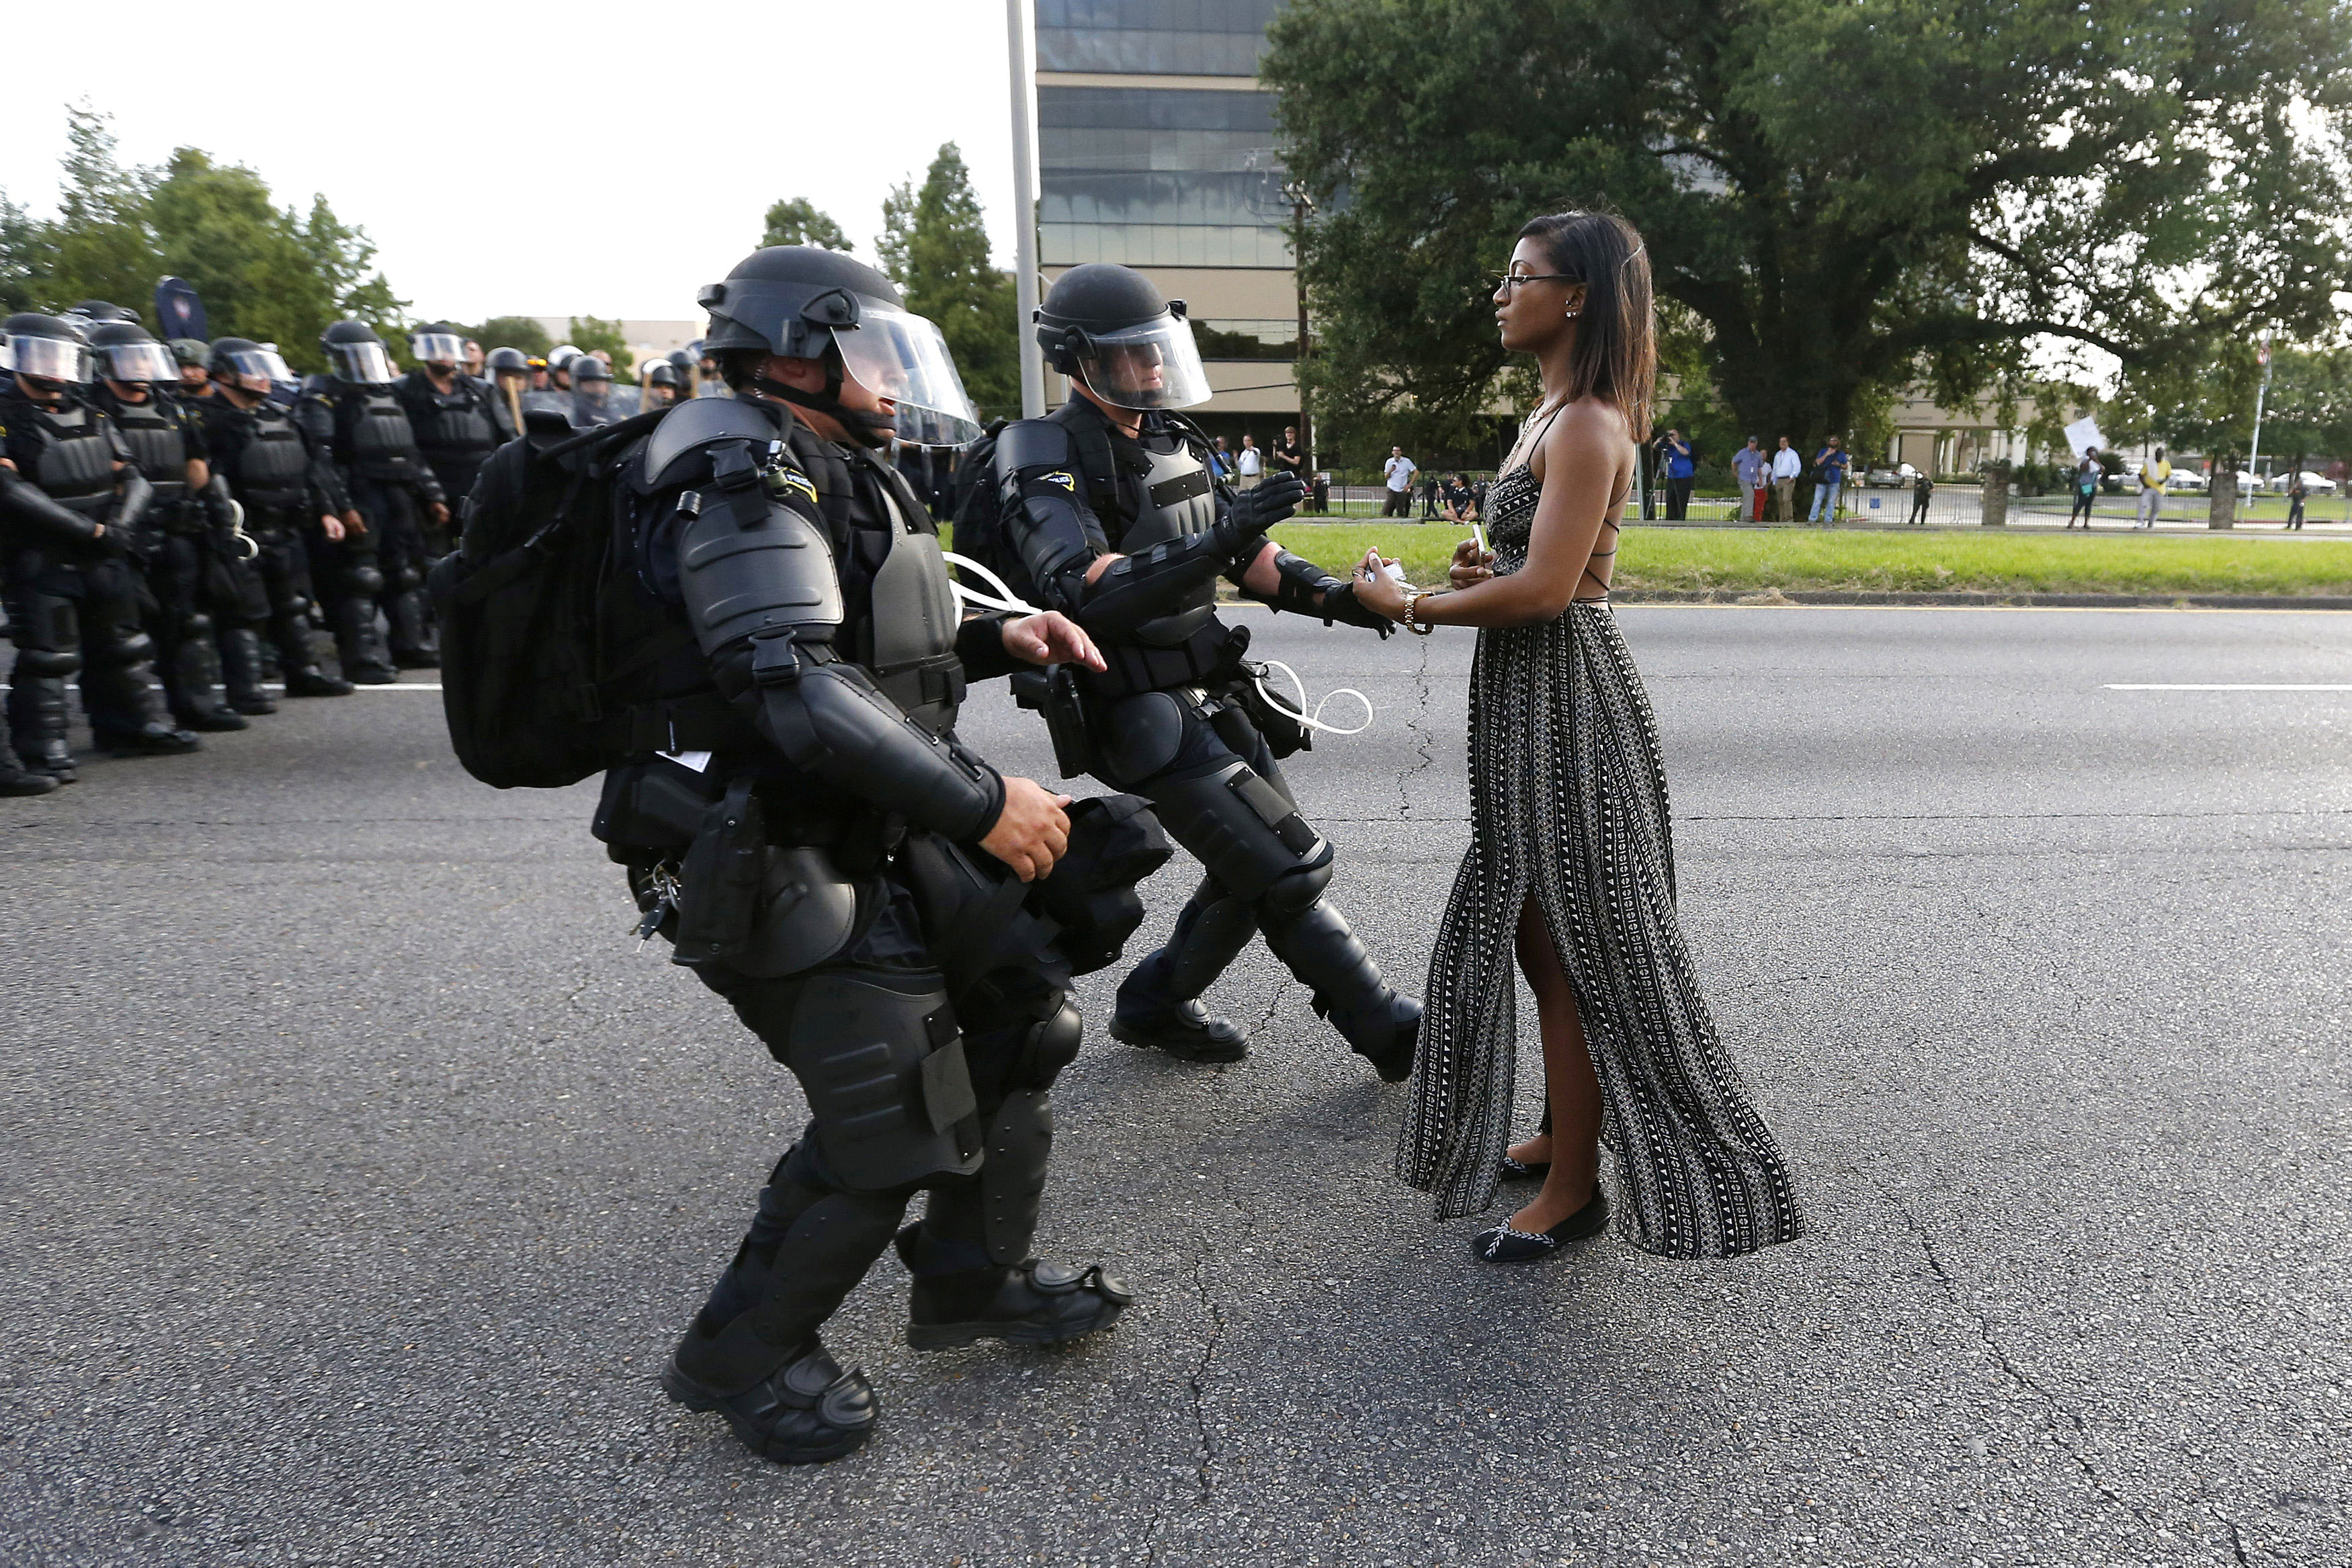 A Picture and its Story: Taking a stand in Baton Rouge